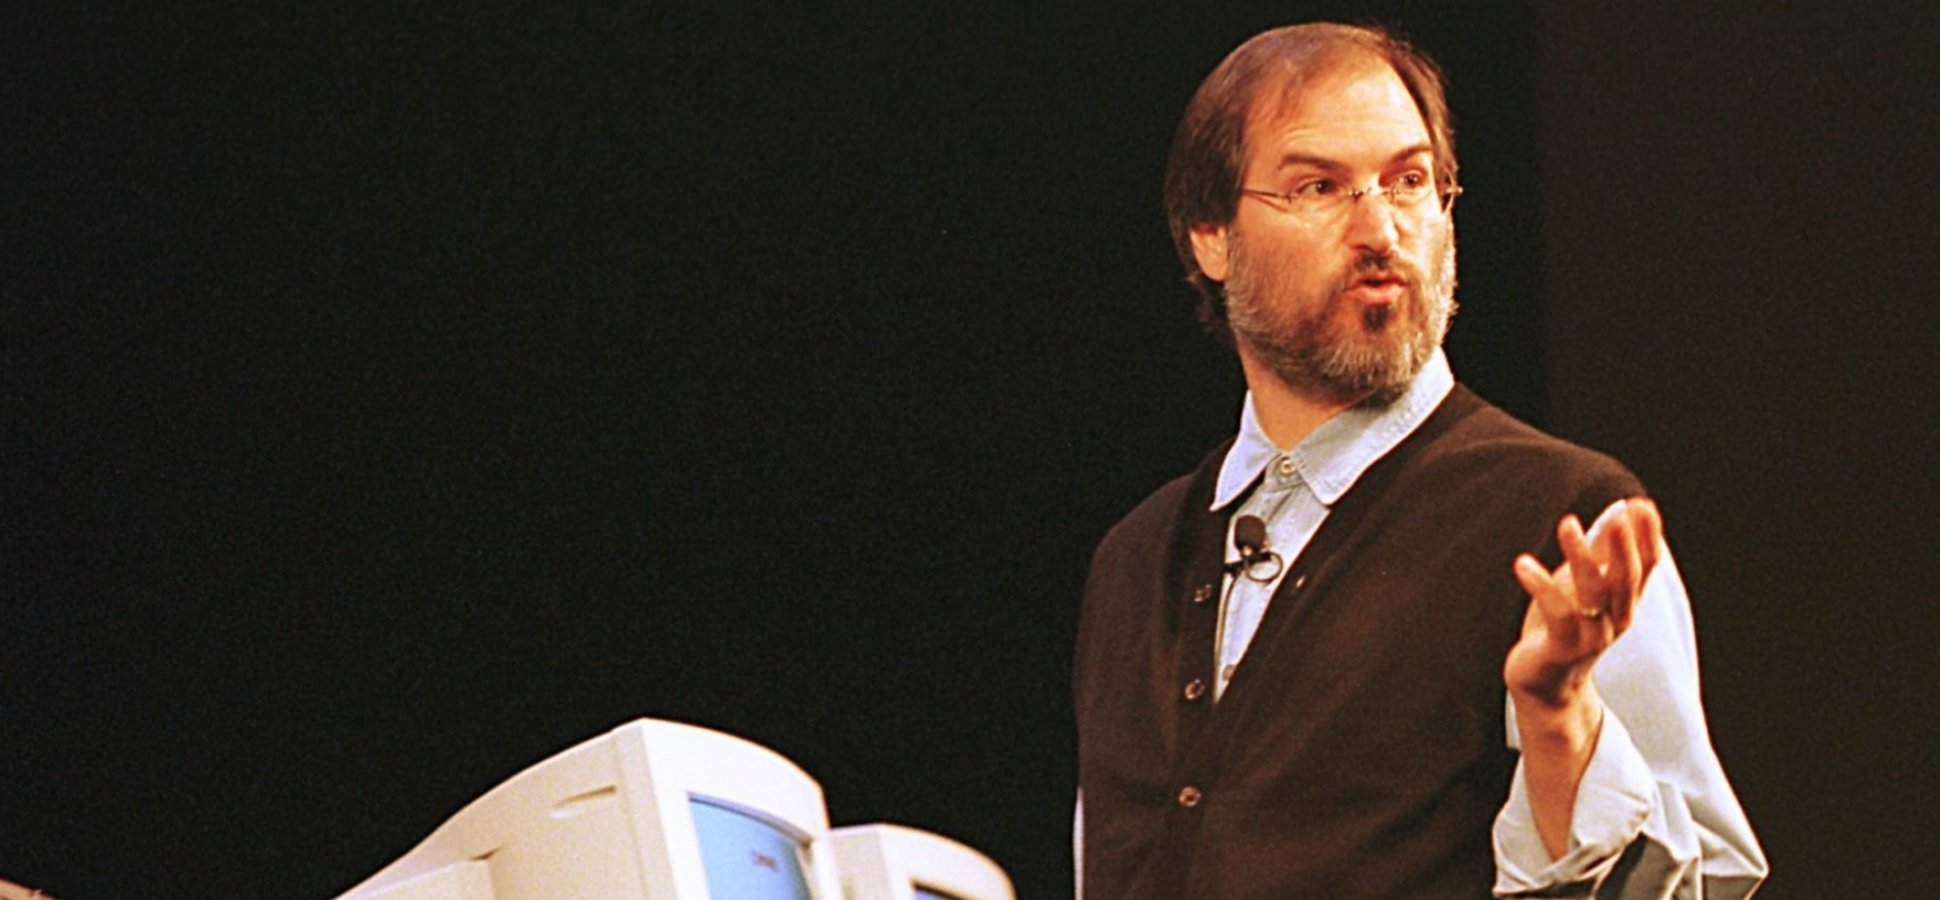 24 Years Ago, Steve Jobs Taught a Major Lesson in Good Leadership With This Short Sentence